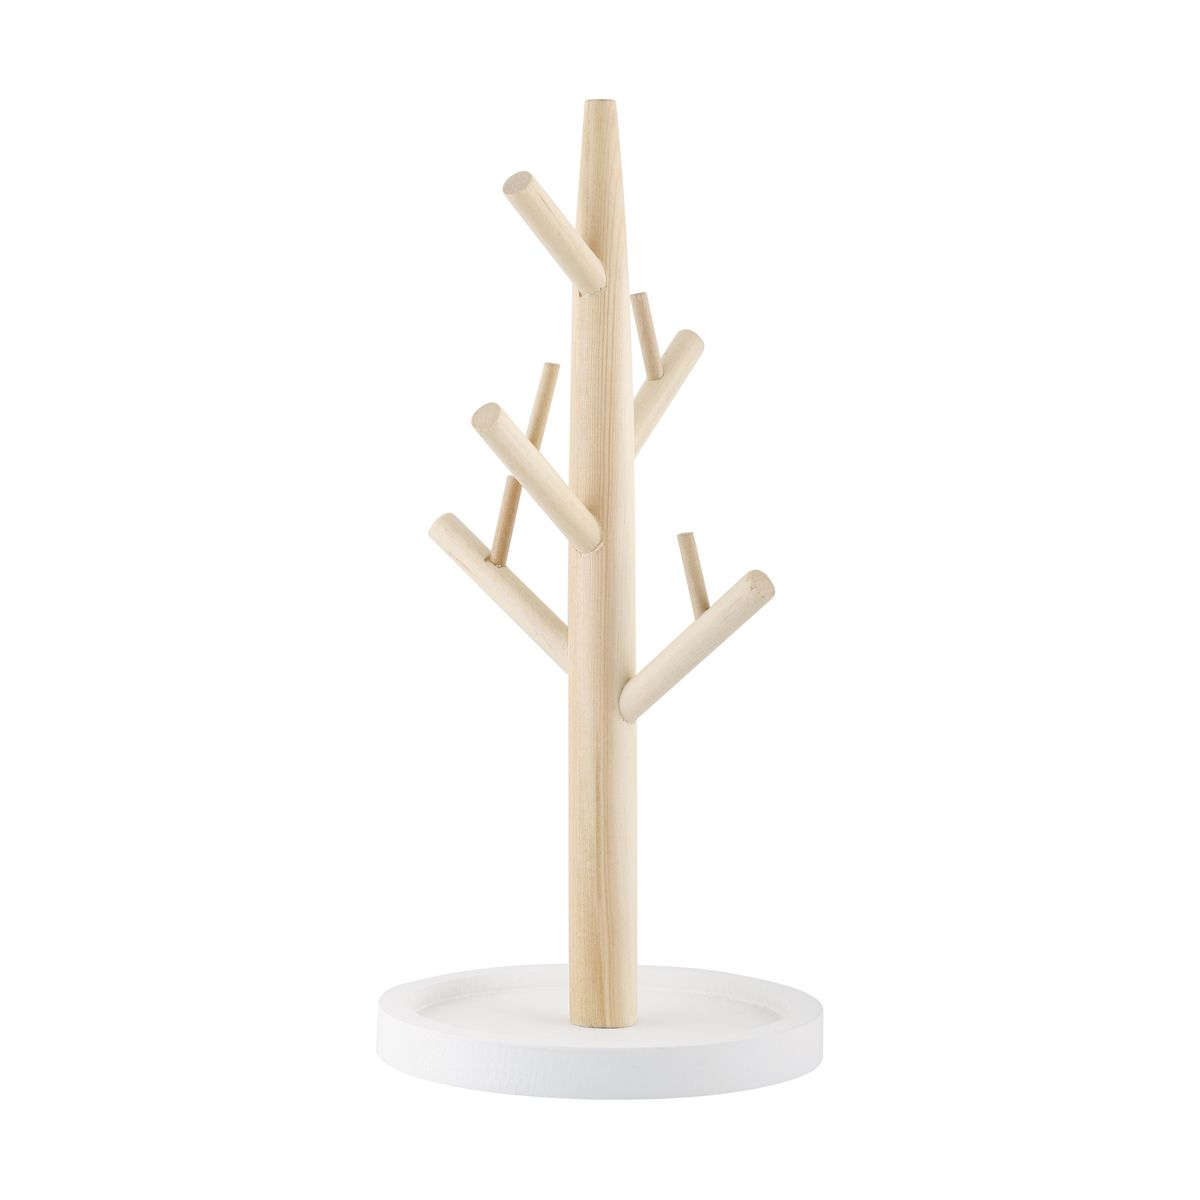 Jewellery Tree Kmart Jewelry Tree Charm Bracelet Display Room Decor